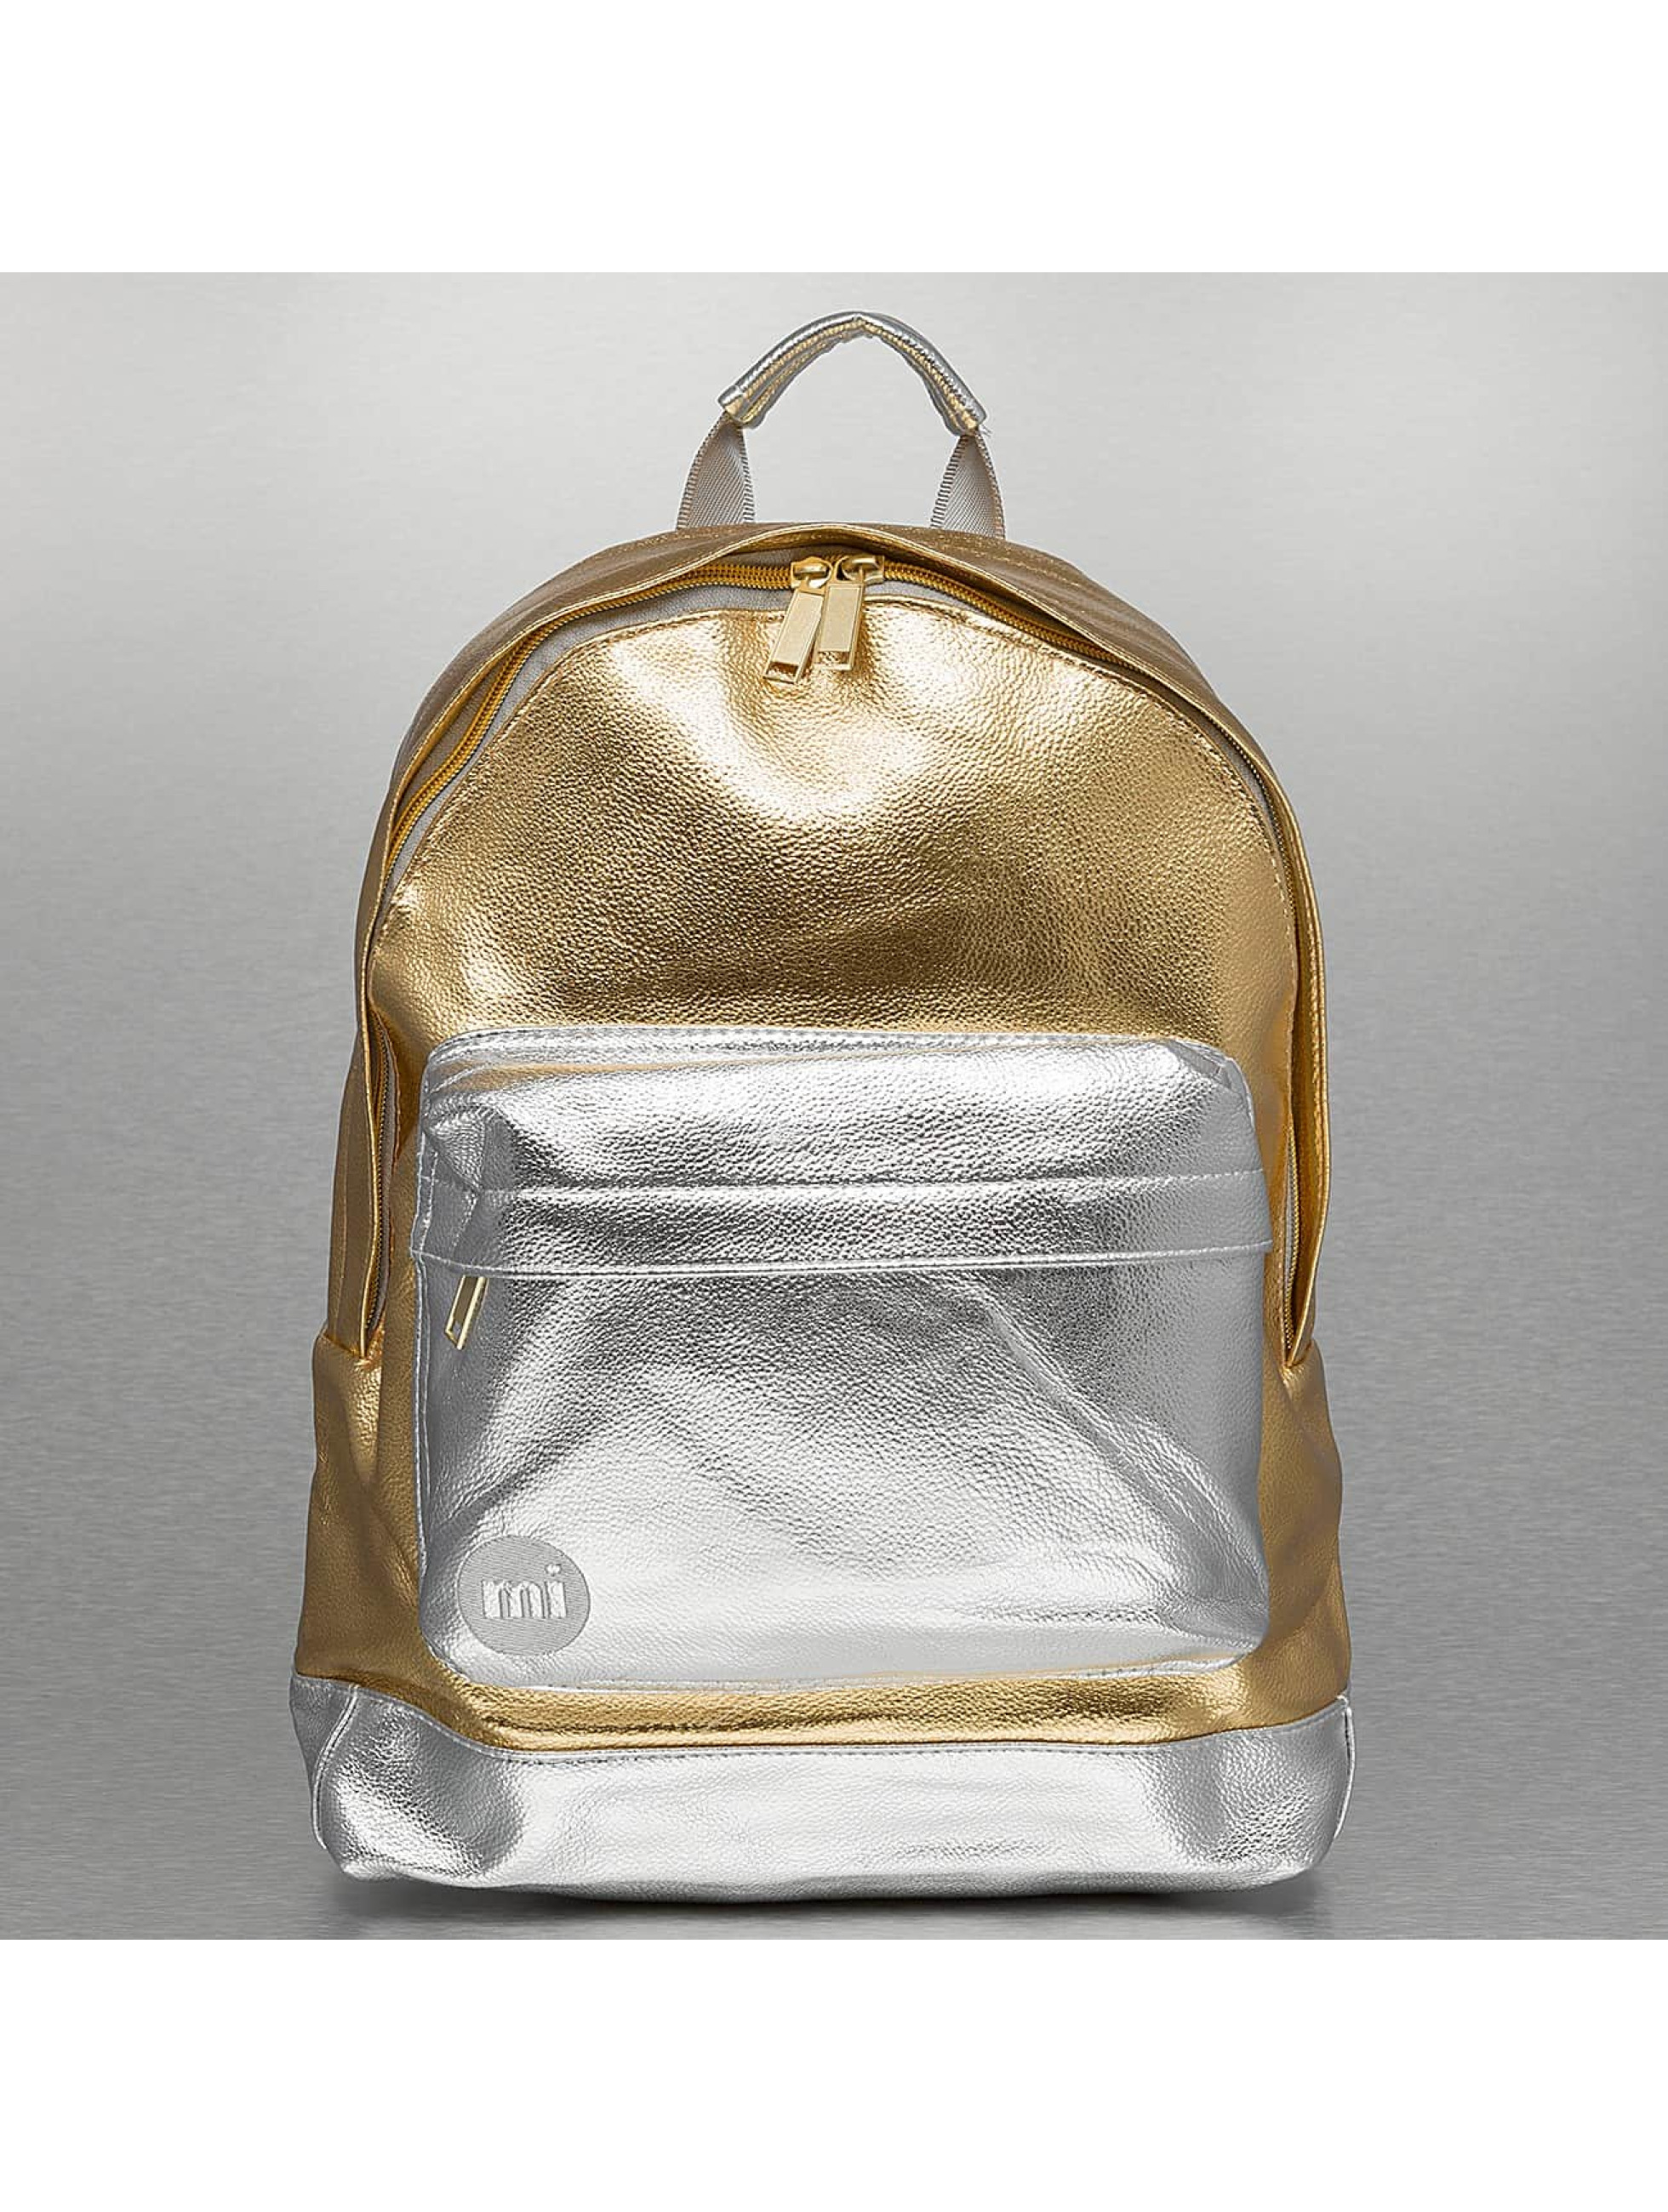 Mi-Pac Backpack 24K. G. gold colored